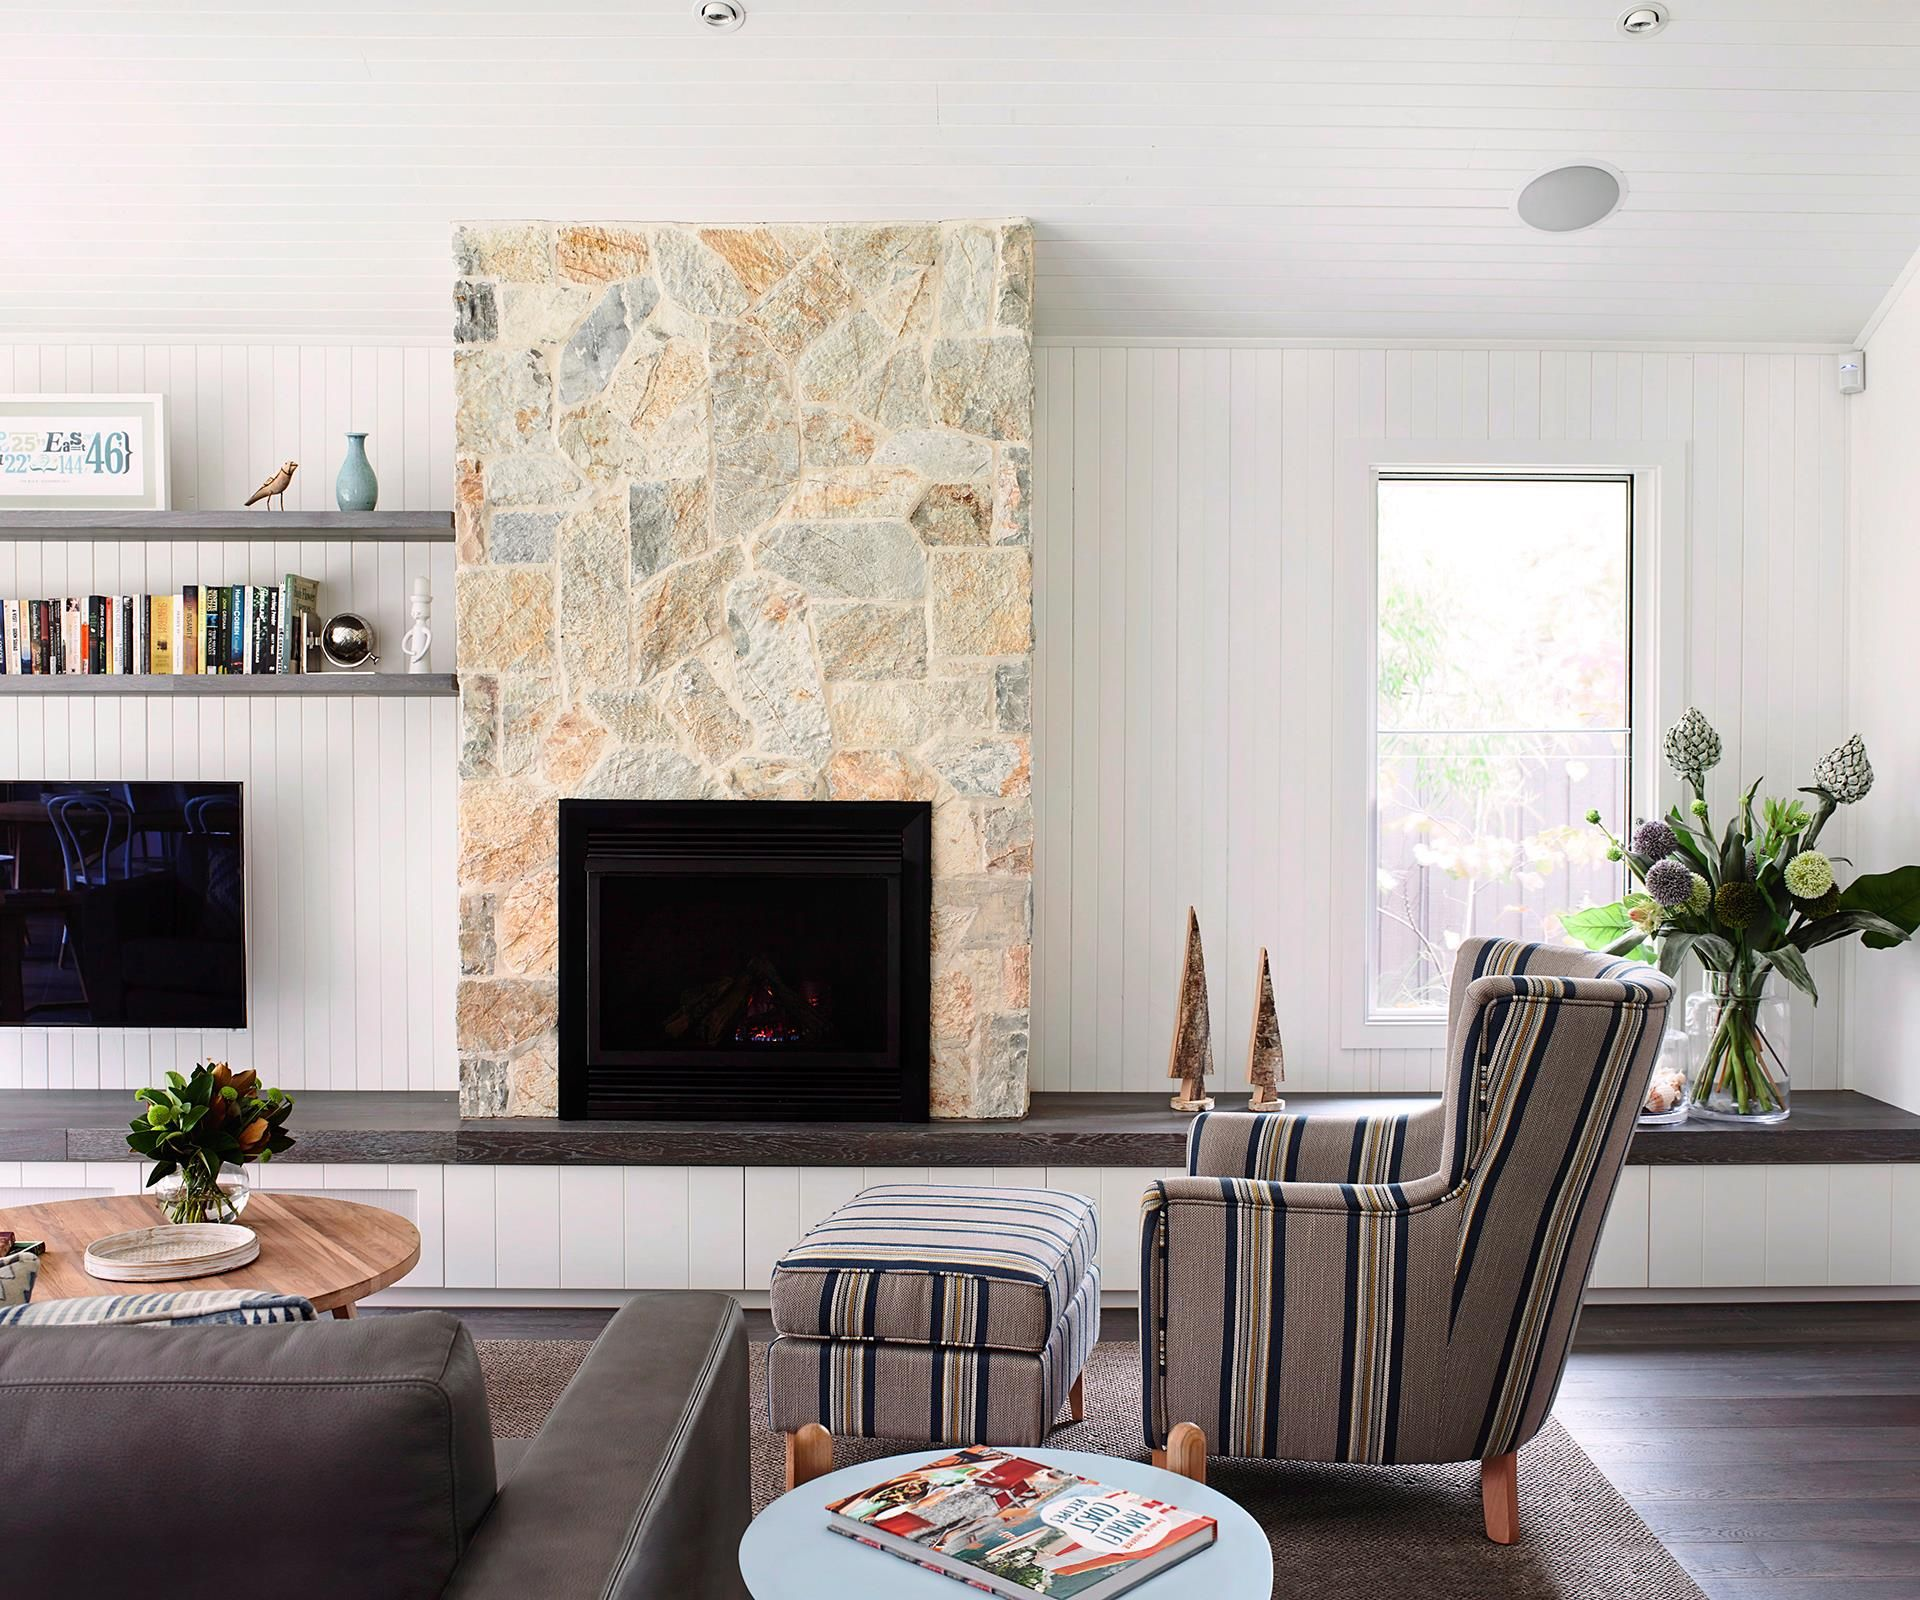 How To Layout A Small Living Room Small Living Room Small Living Room Layout Furniture Layout